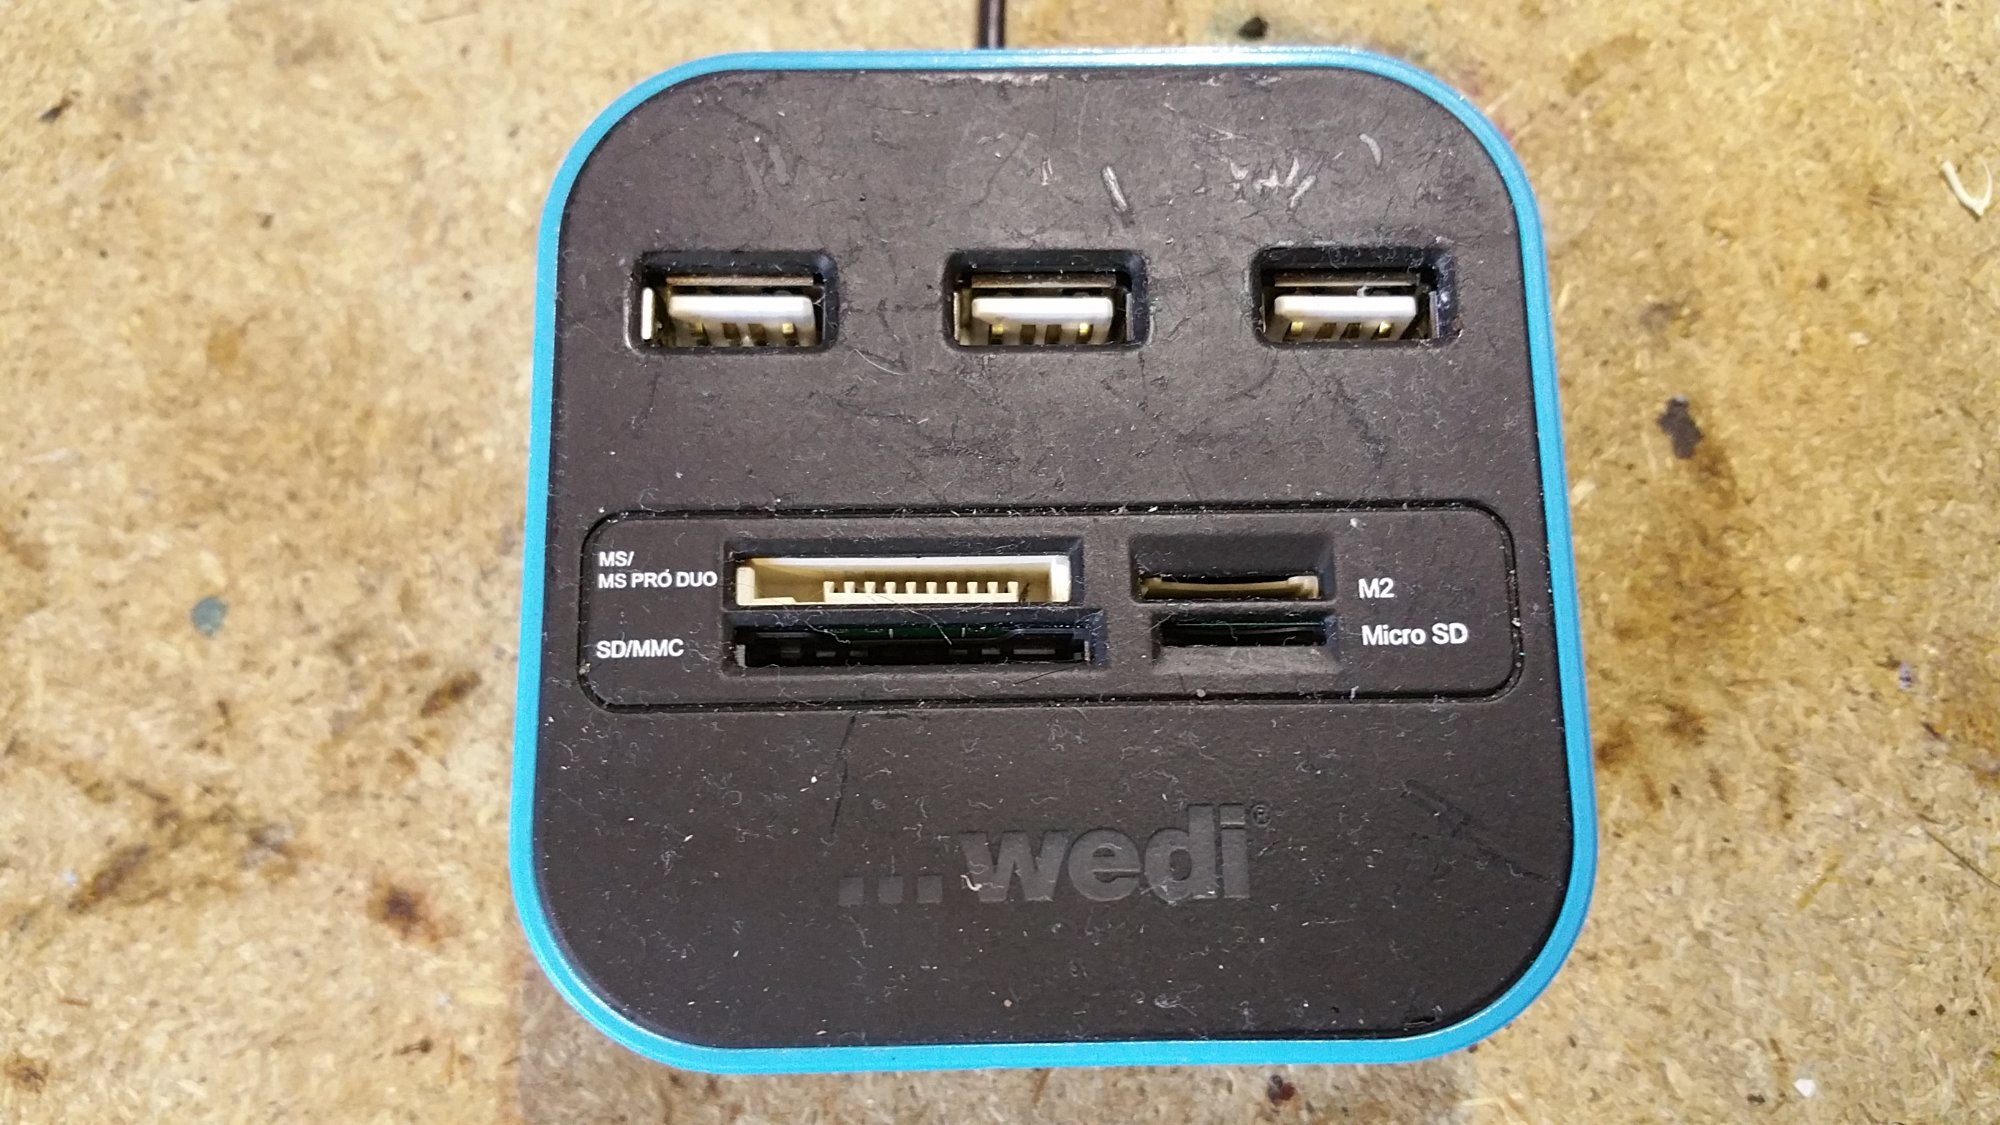 USB hub, card reader